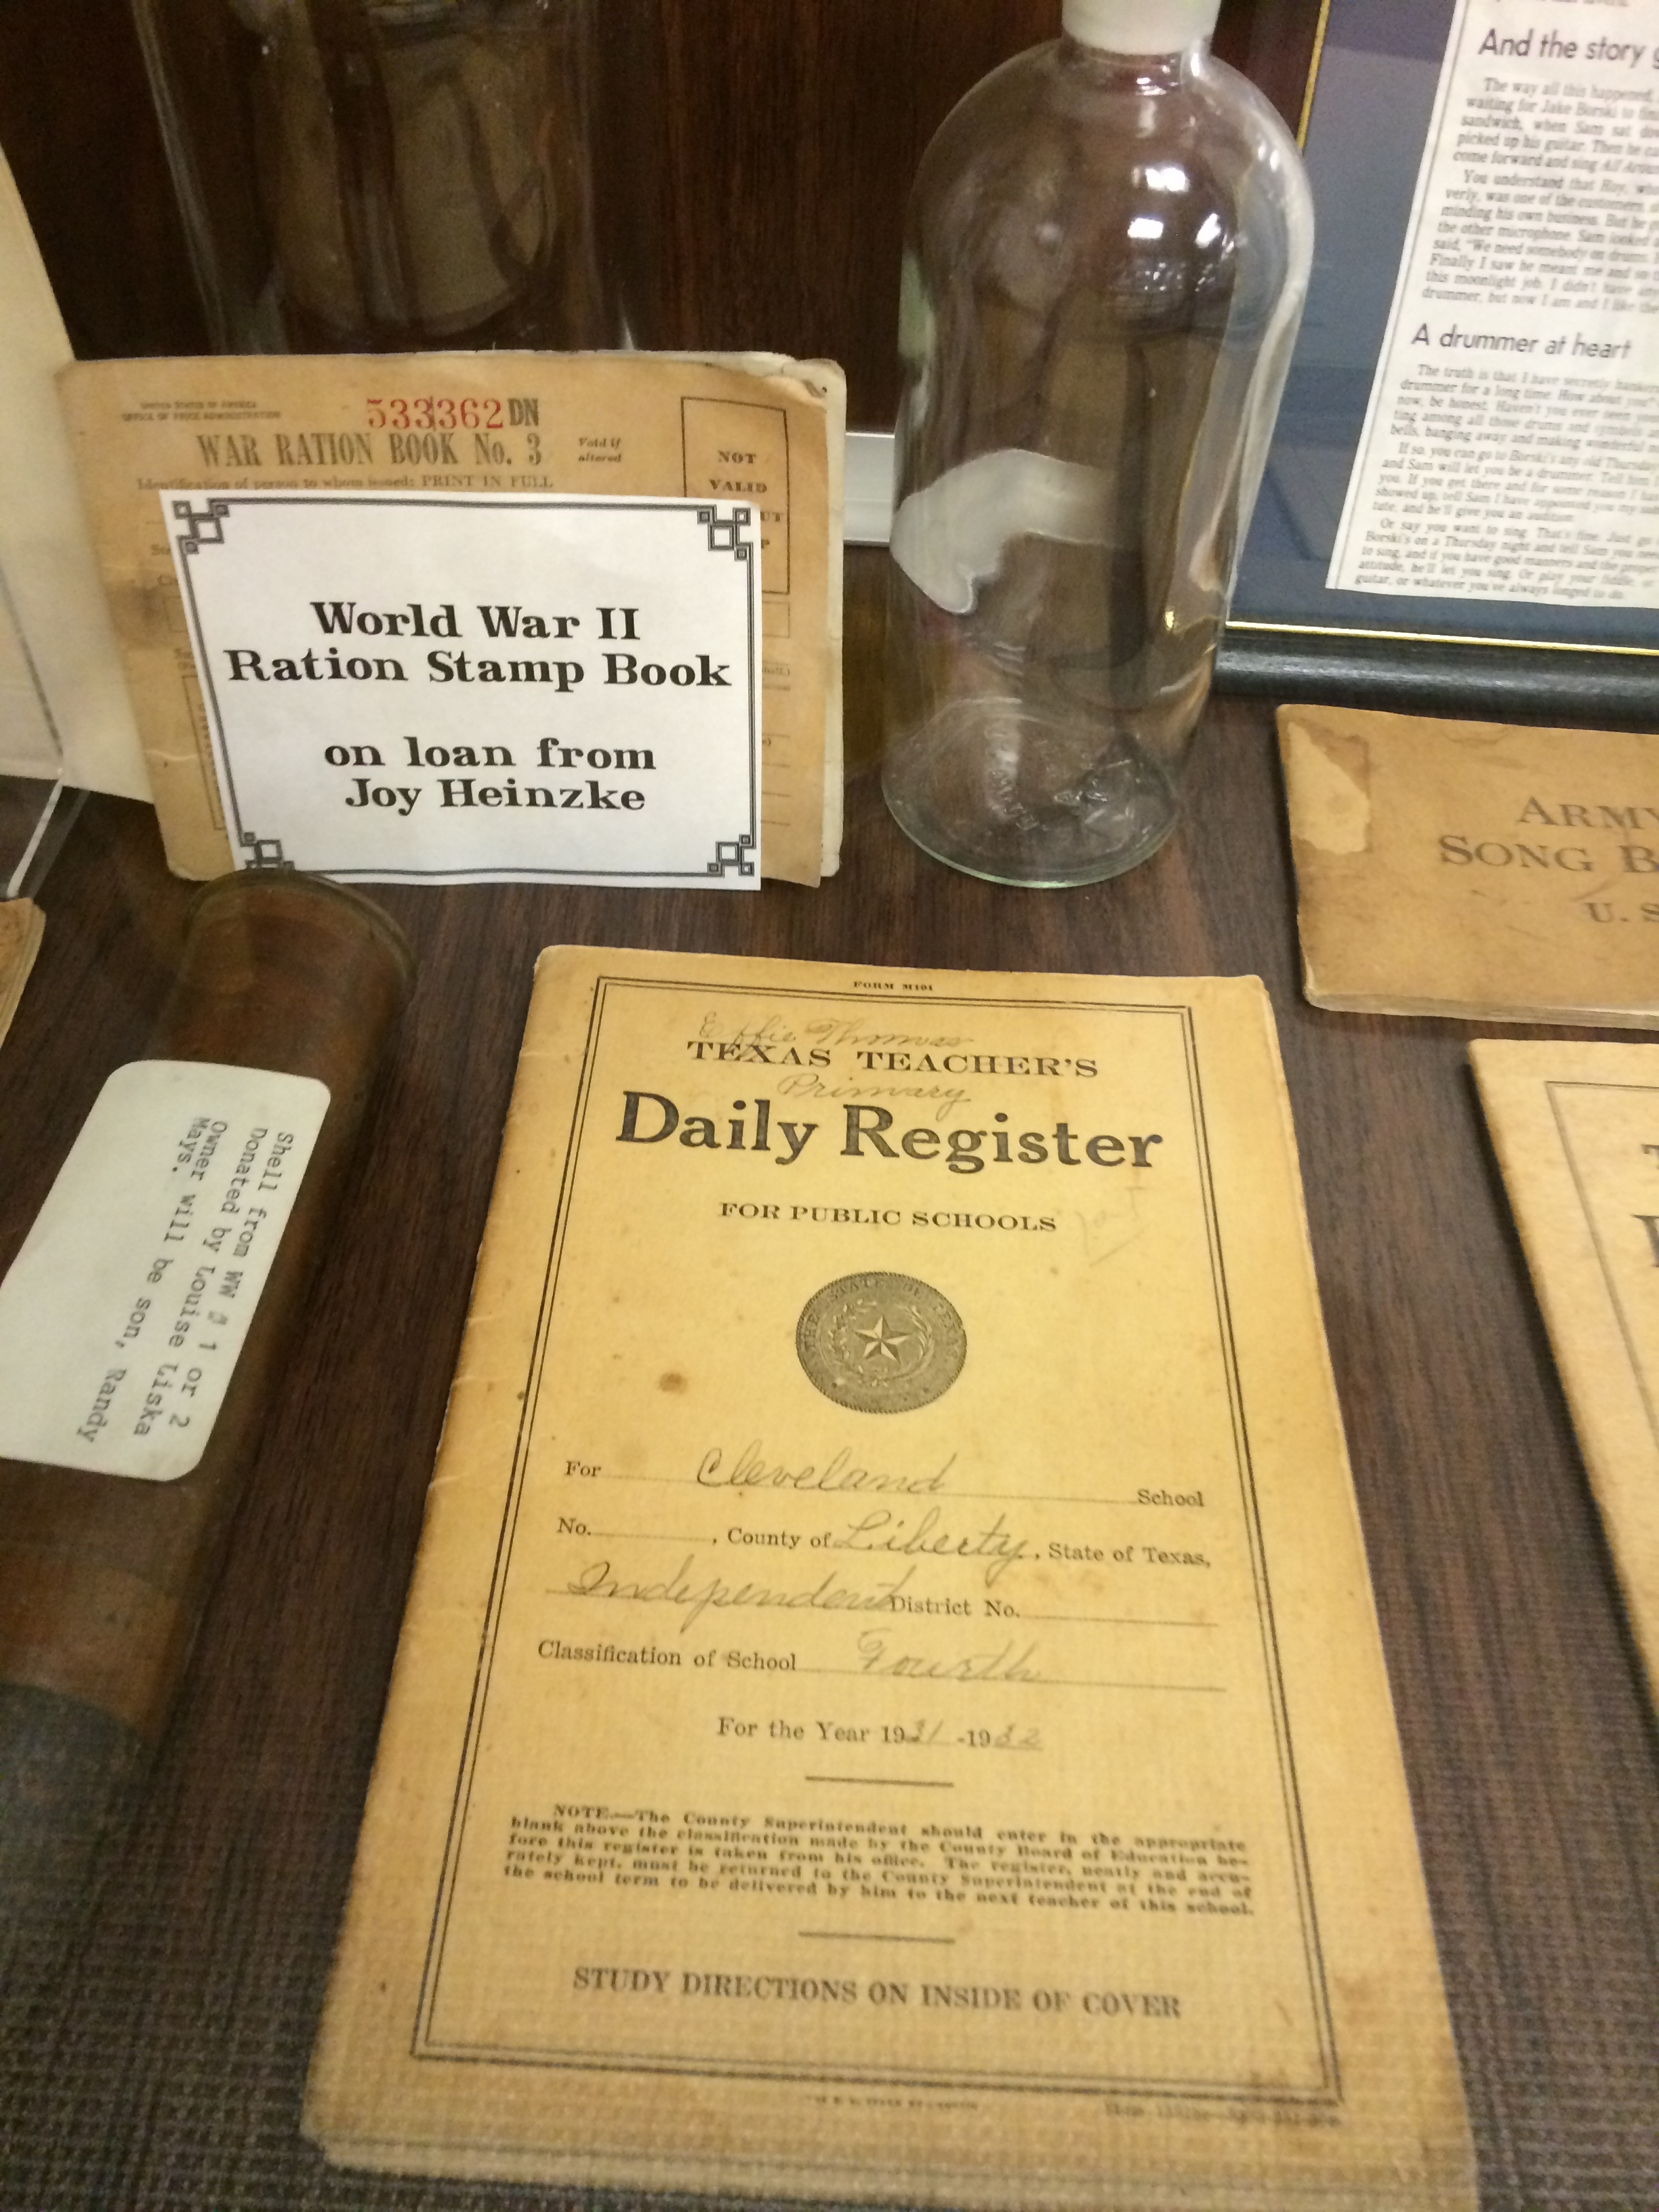 Daily Register on Display